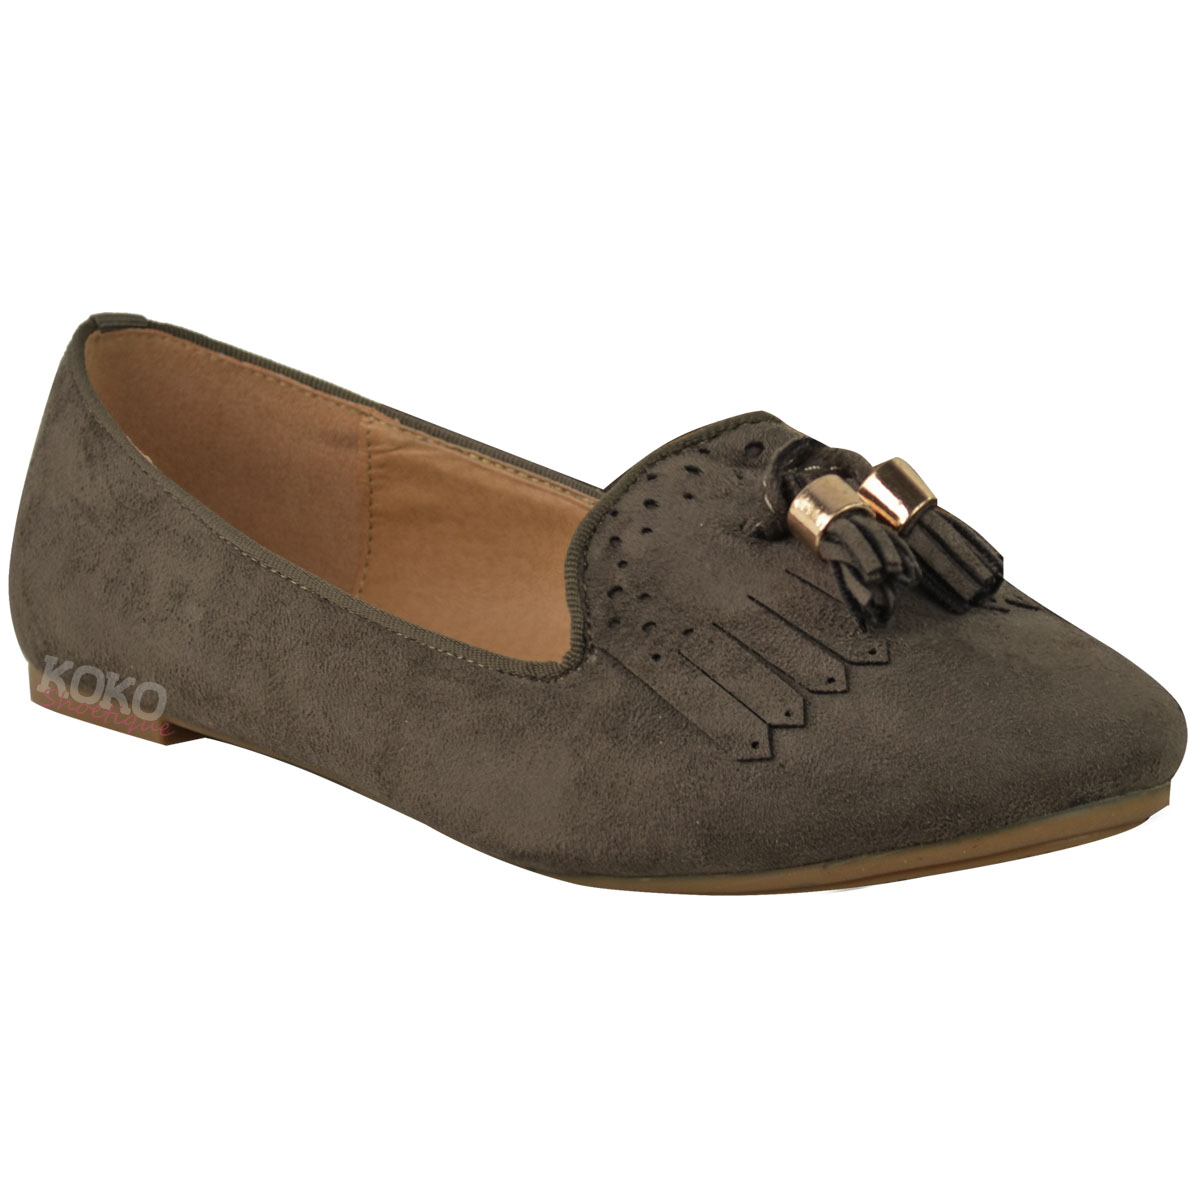 Large Womens Shoes. The Shoesissima team has decades of experience in creating shoes and now we are dedicating that expertise to the missima (logo) collection; a range of shoes inspired by catwalk and designed by professionals specifically for ladies large shoe UK sizes 8 .